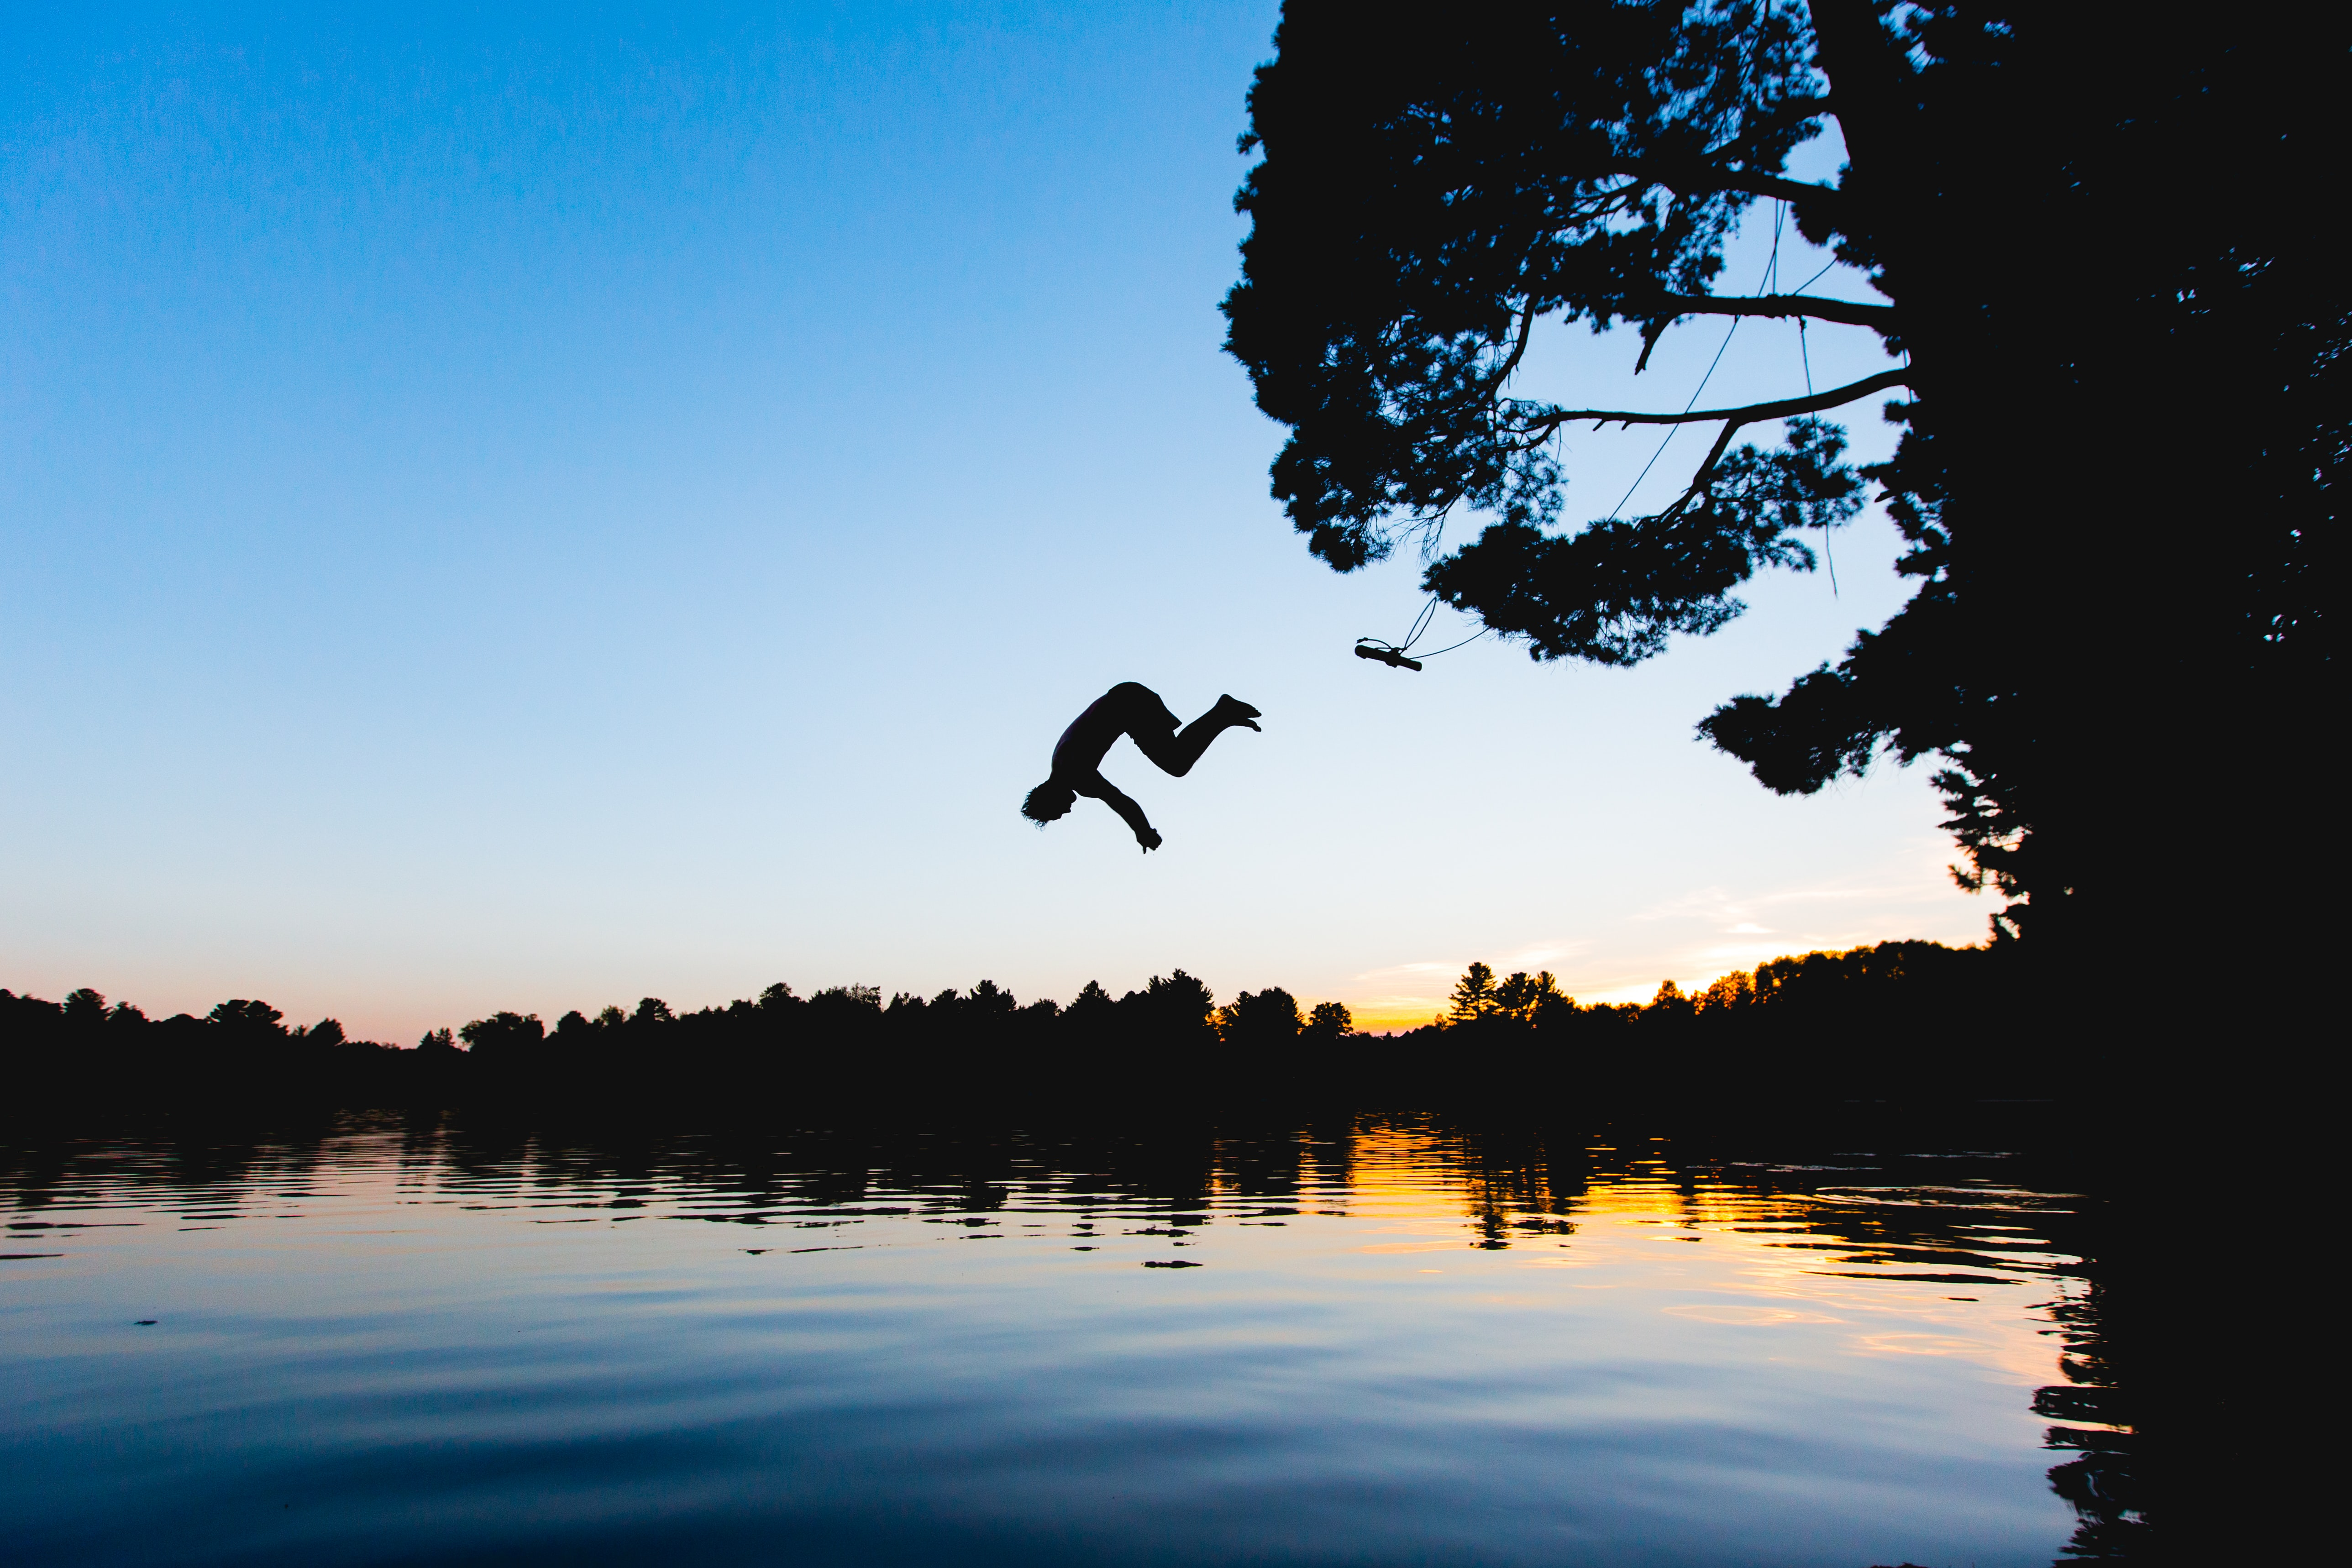 man jump on water at golden hour